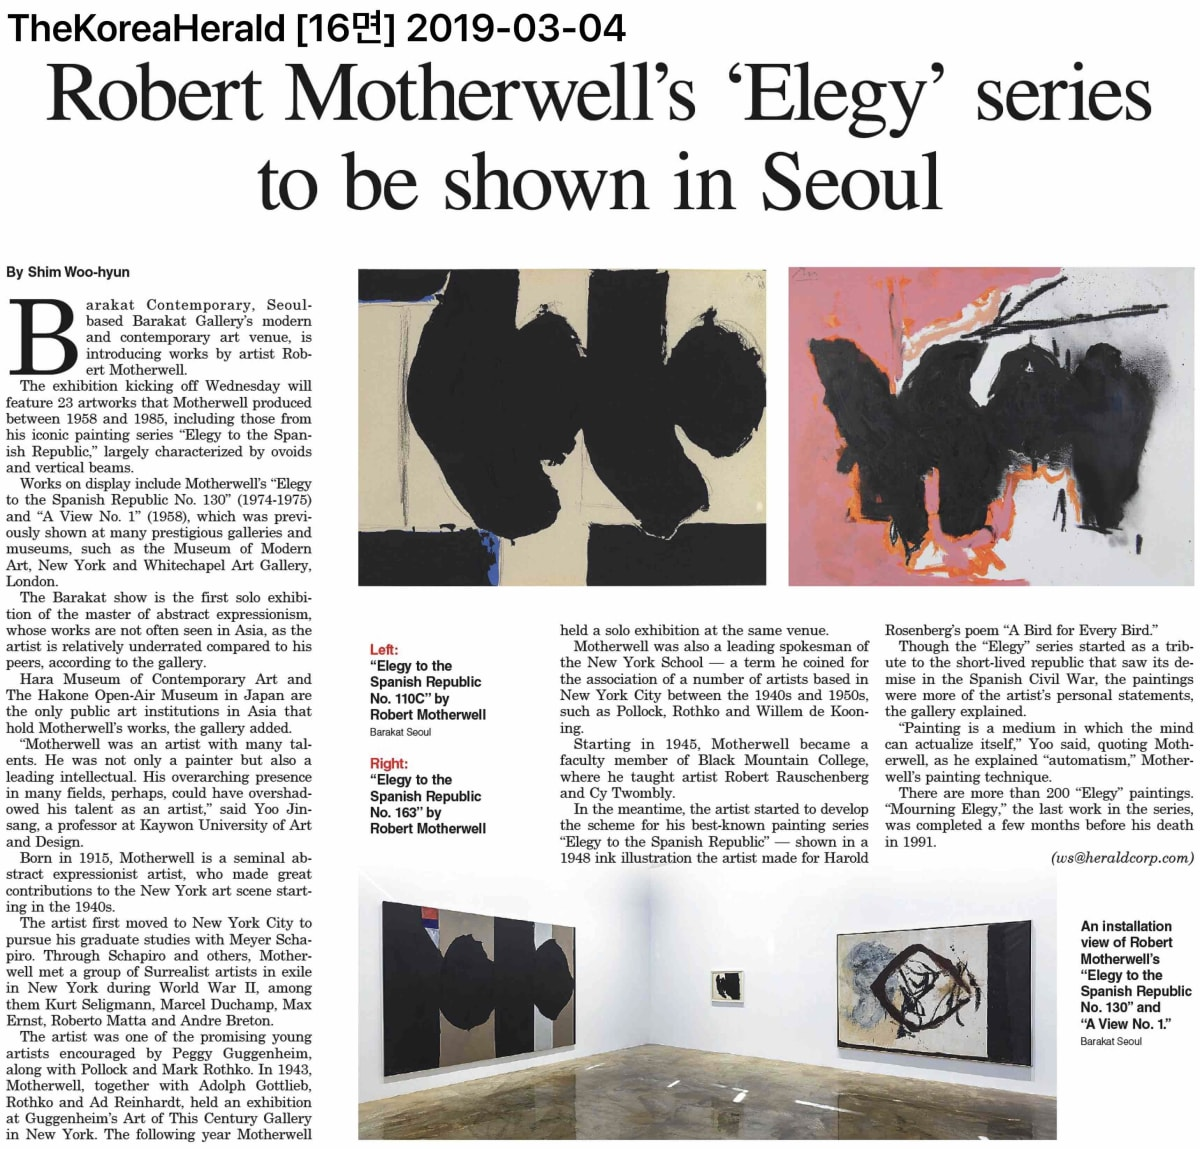 Robert Motherwell's 'Elegy' series to be shown in Seoul